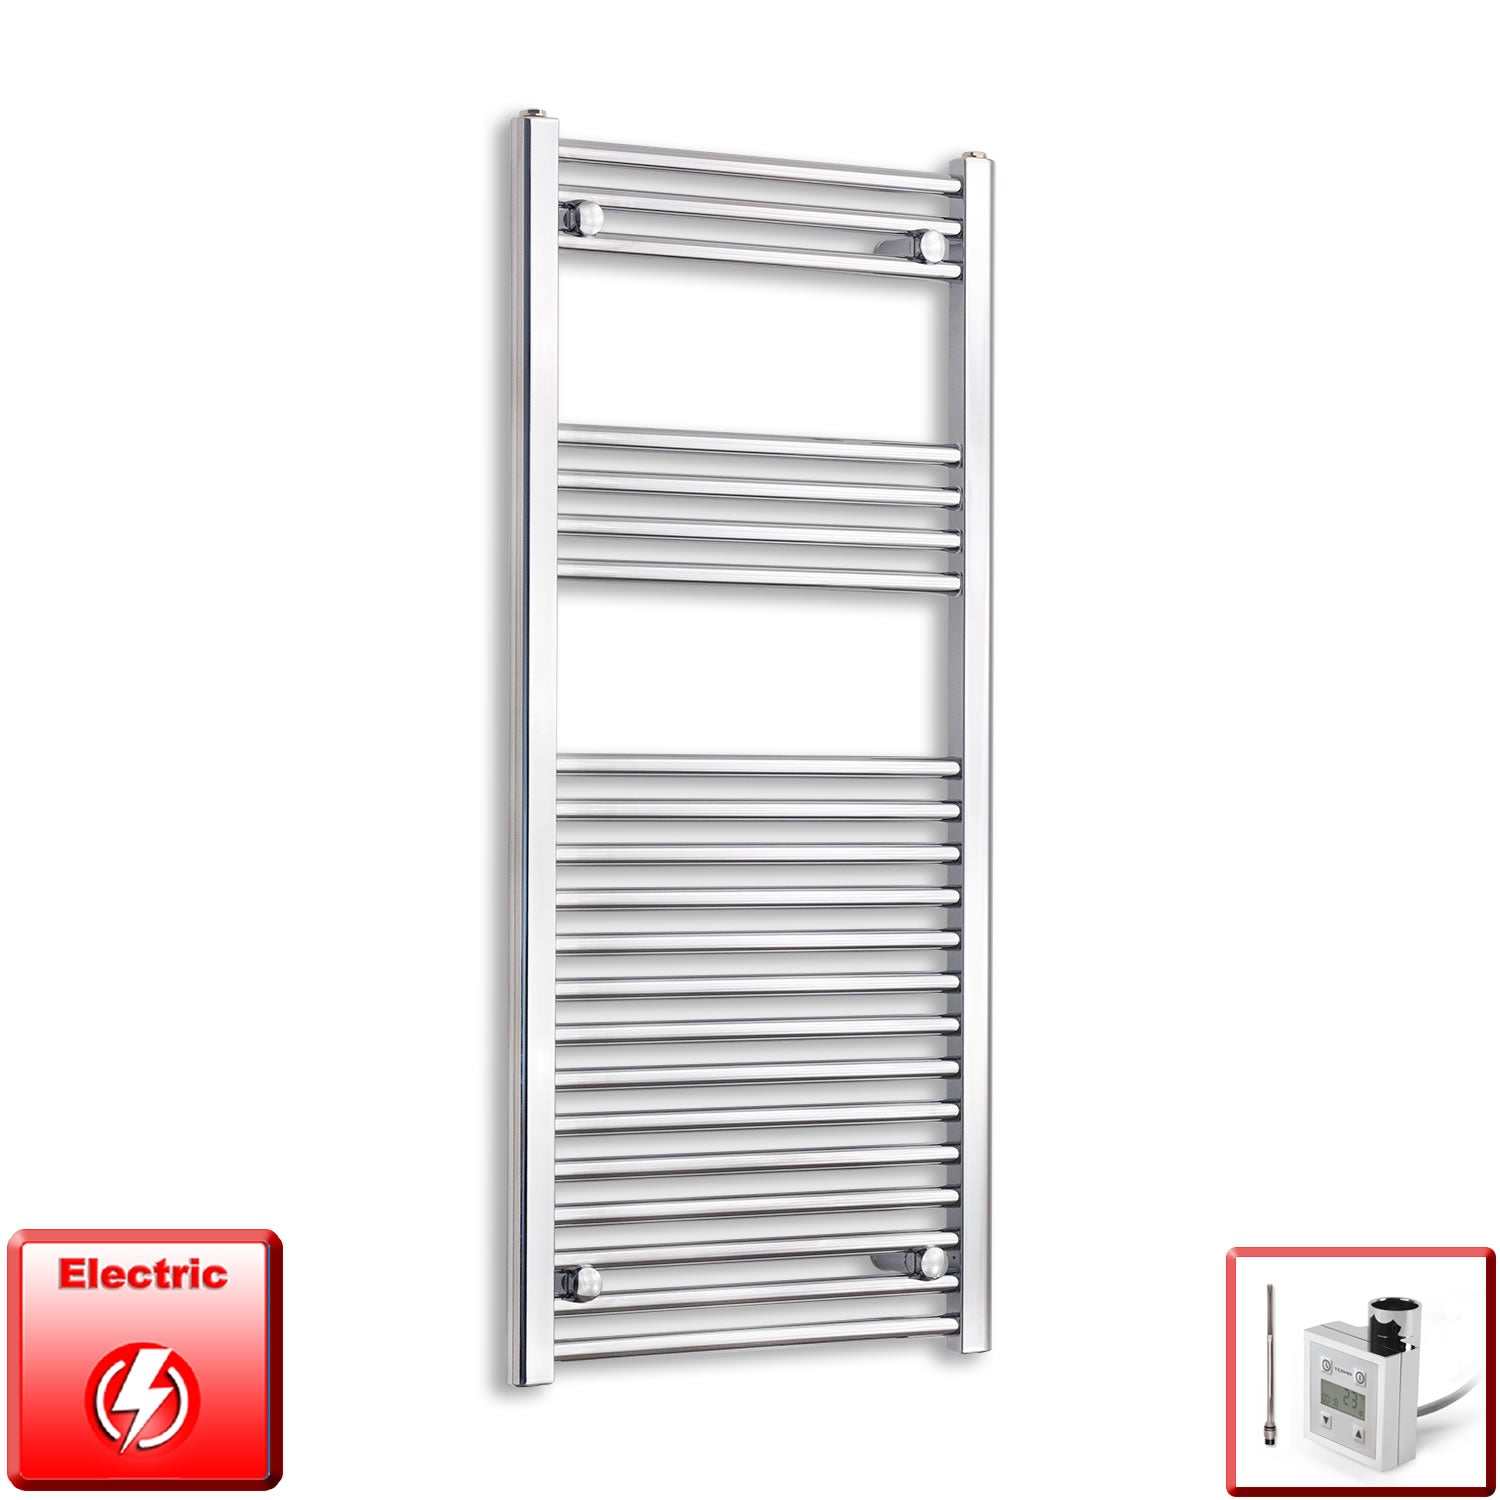 500mm Wide 1118mm High Pre-Filled Electric Heated Towel Rail Radiator Chrome HTR,KTX3 Thermostatic